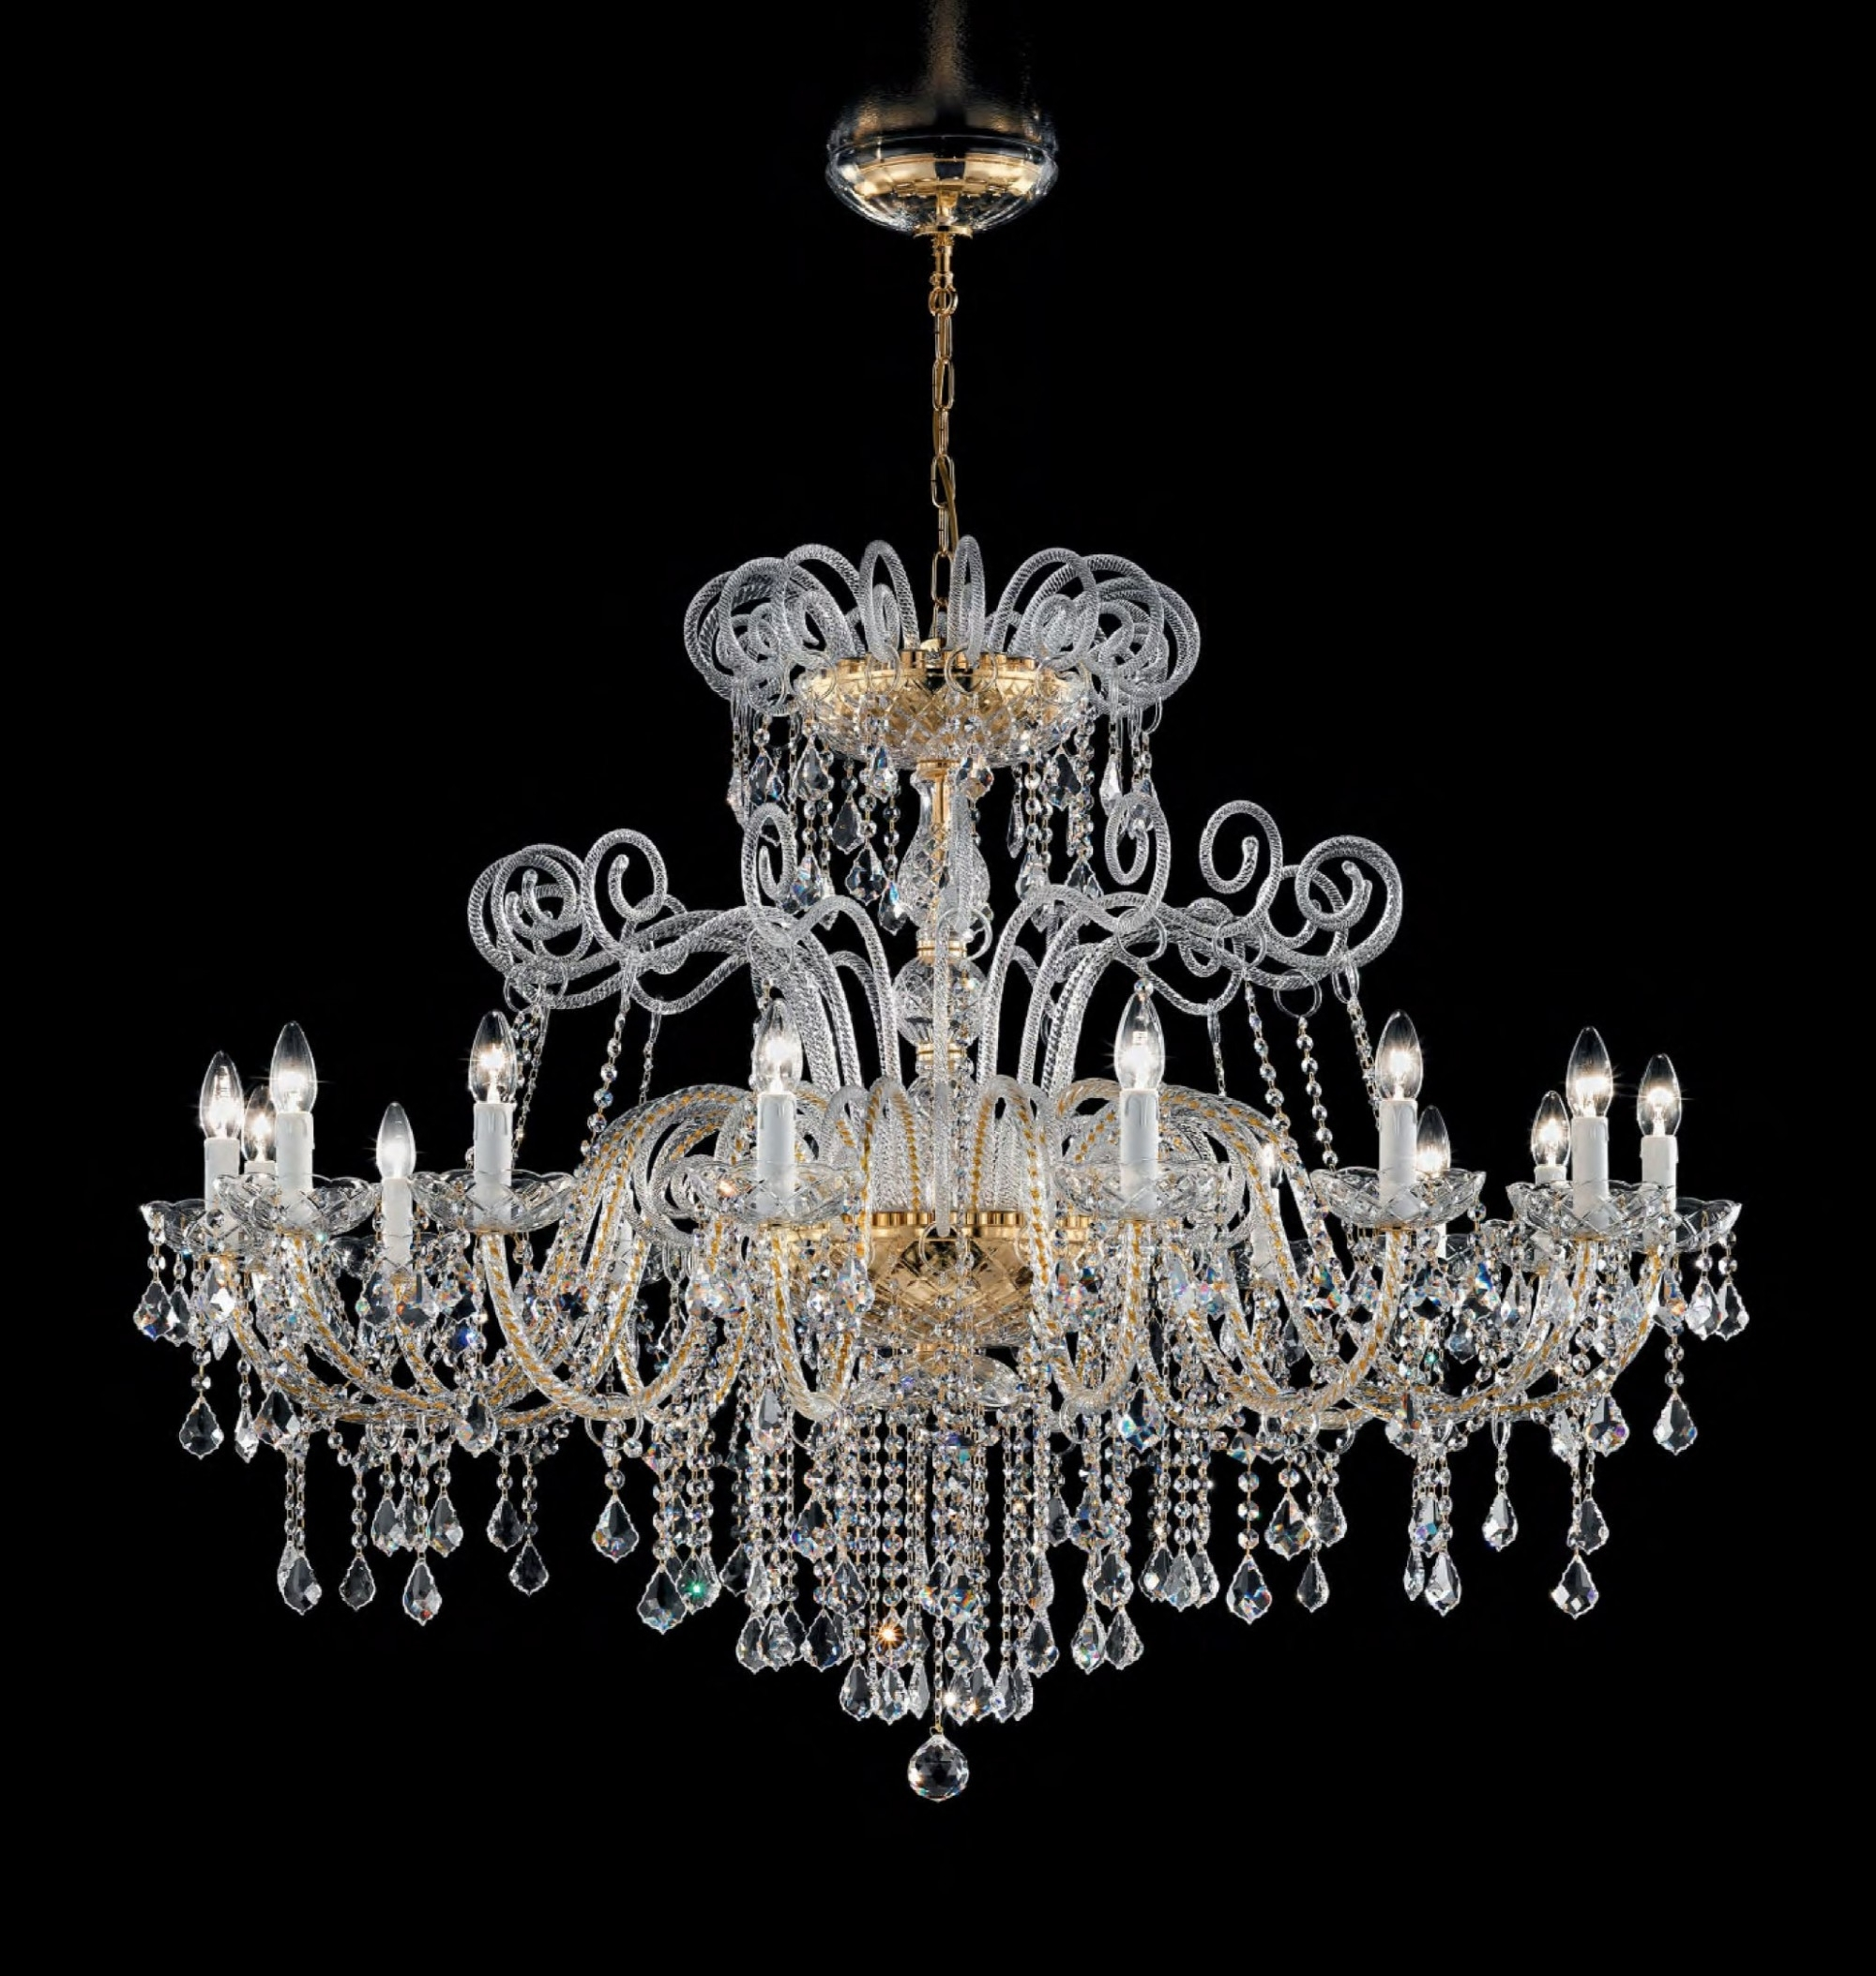 Antique Style Murano Glass Swarovski Crystals Chandelier Syl948K16 With Well Known Antique Looking Chandeliers (Gallery 12 of 20)